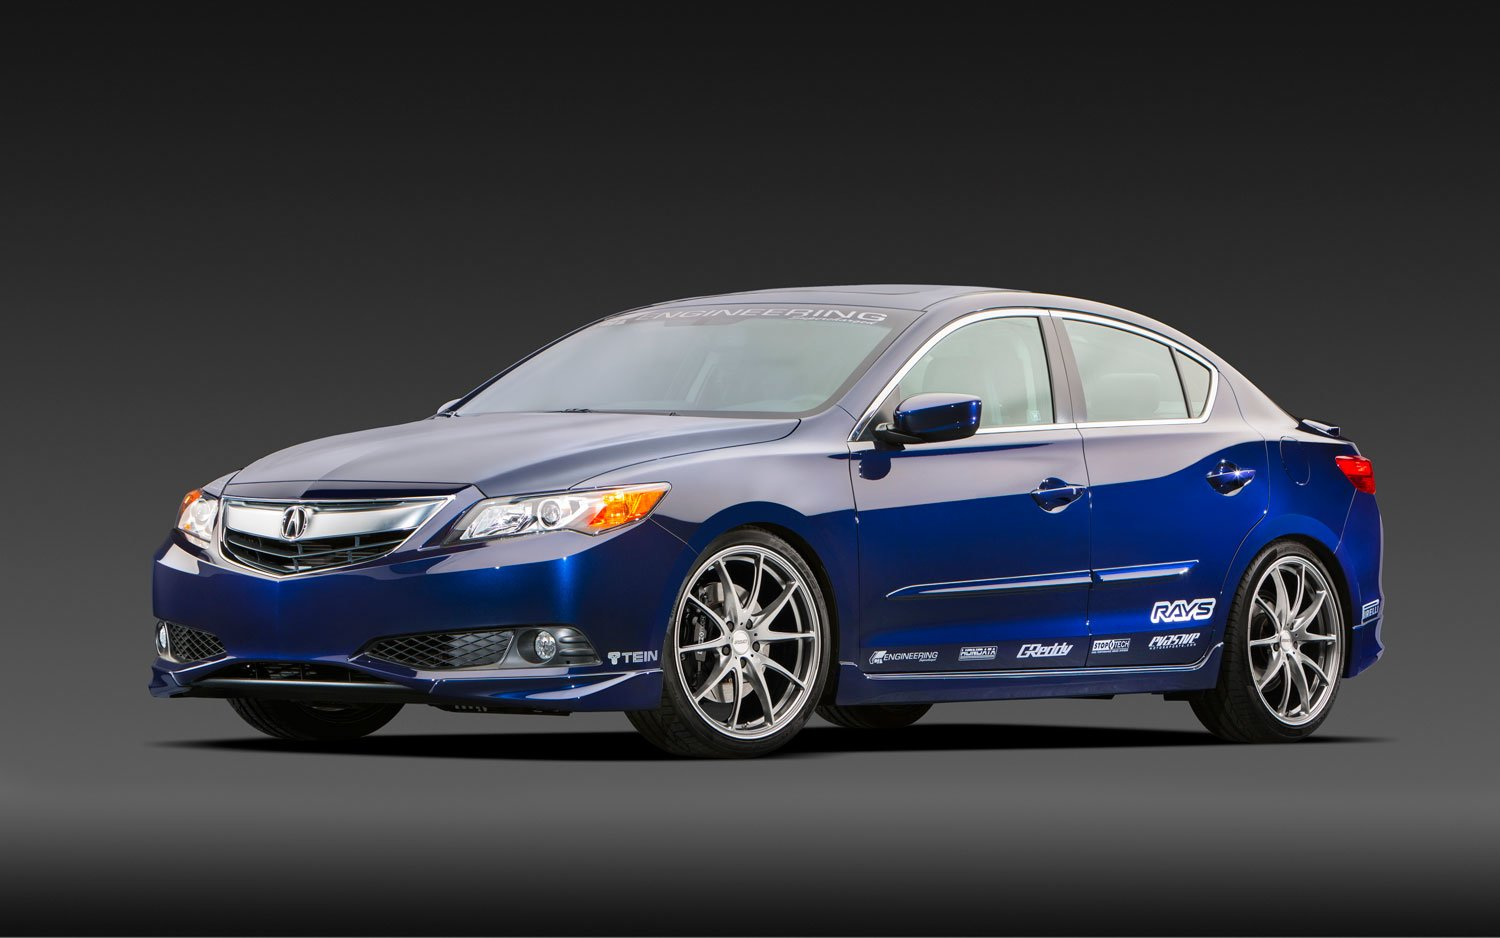 Latest Supercharged 2013 Acura Ilx New Cars Reviews Free Download